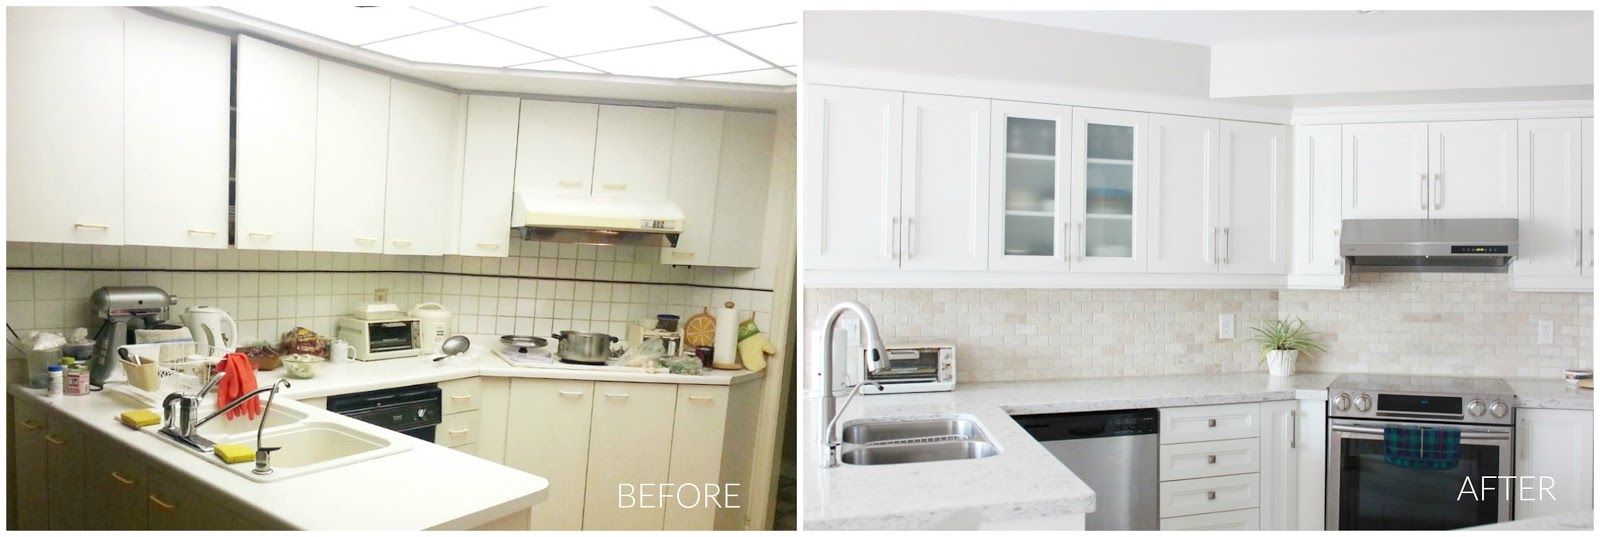 Kitchen Reno Diary 3 {Before and After}